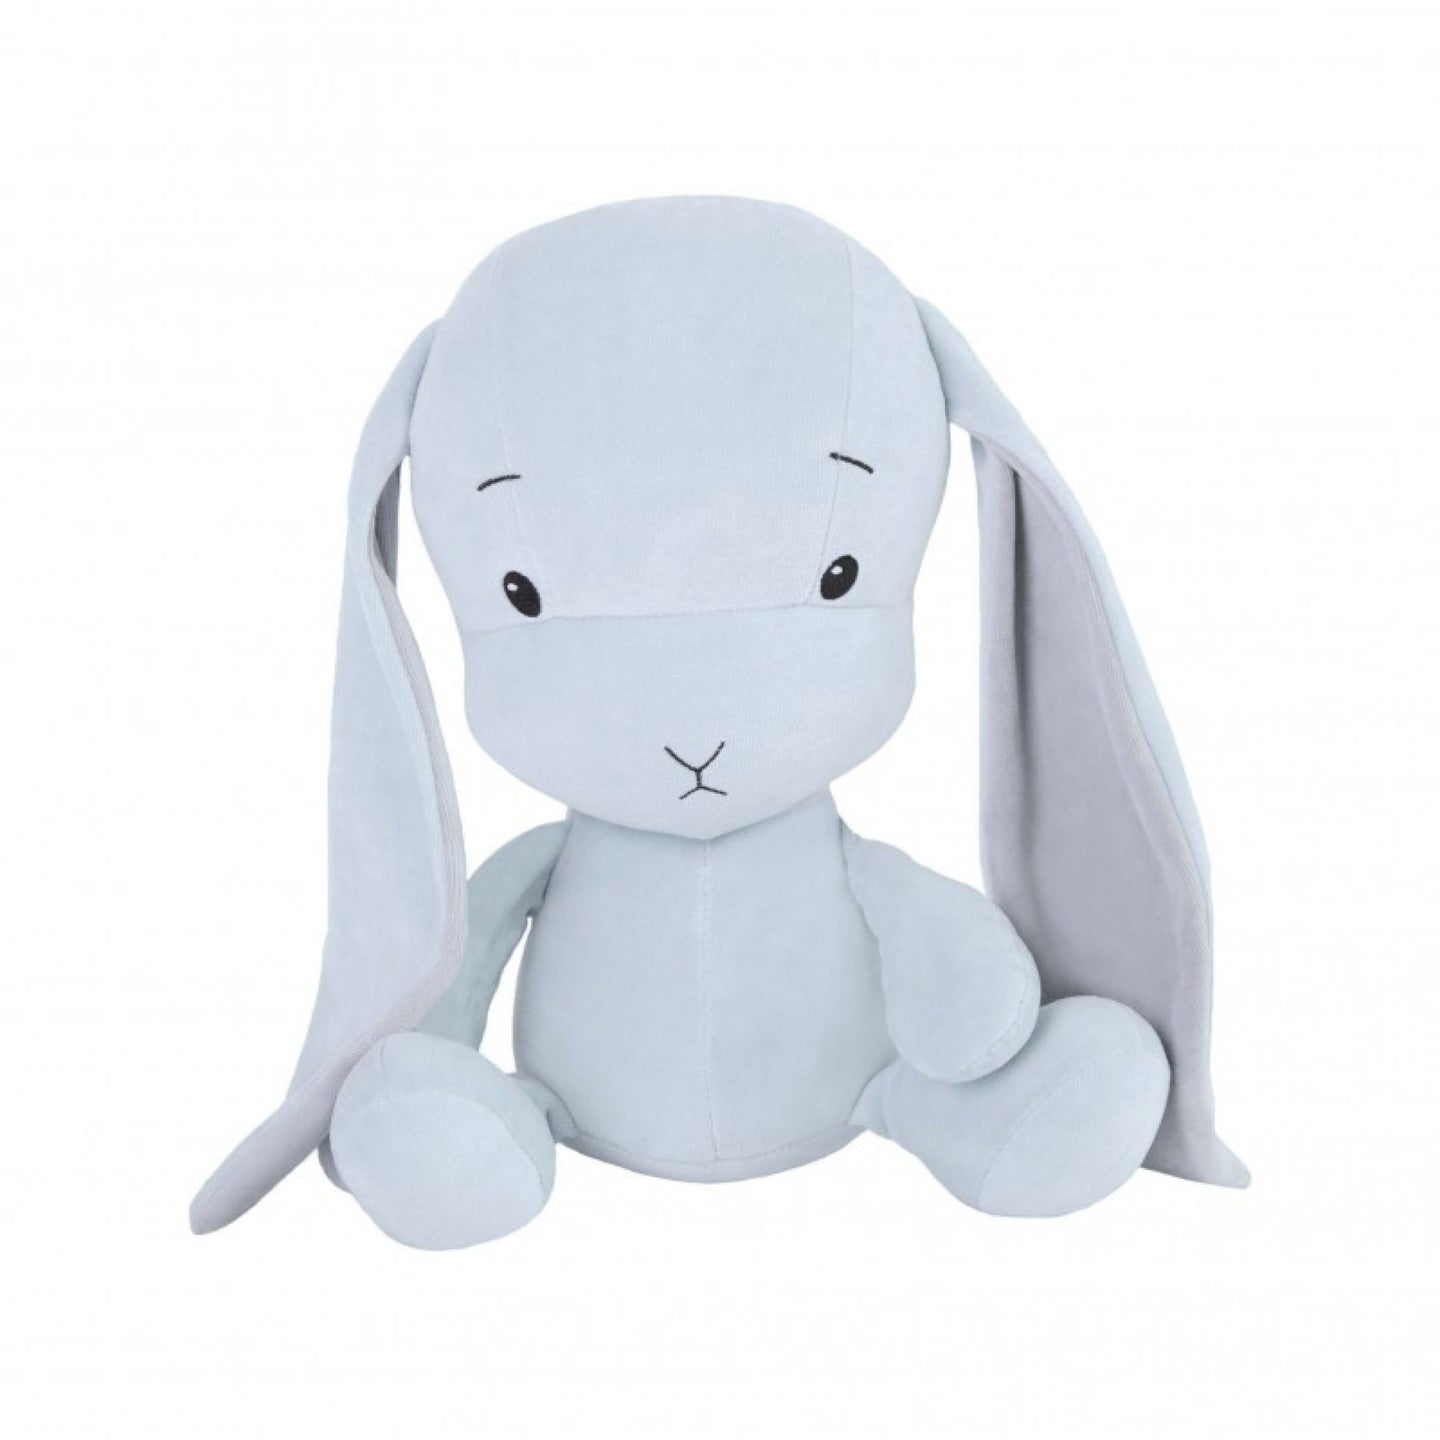 Bunny, Small, Blue Grey ears - 20 cm